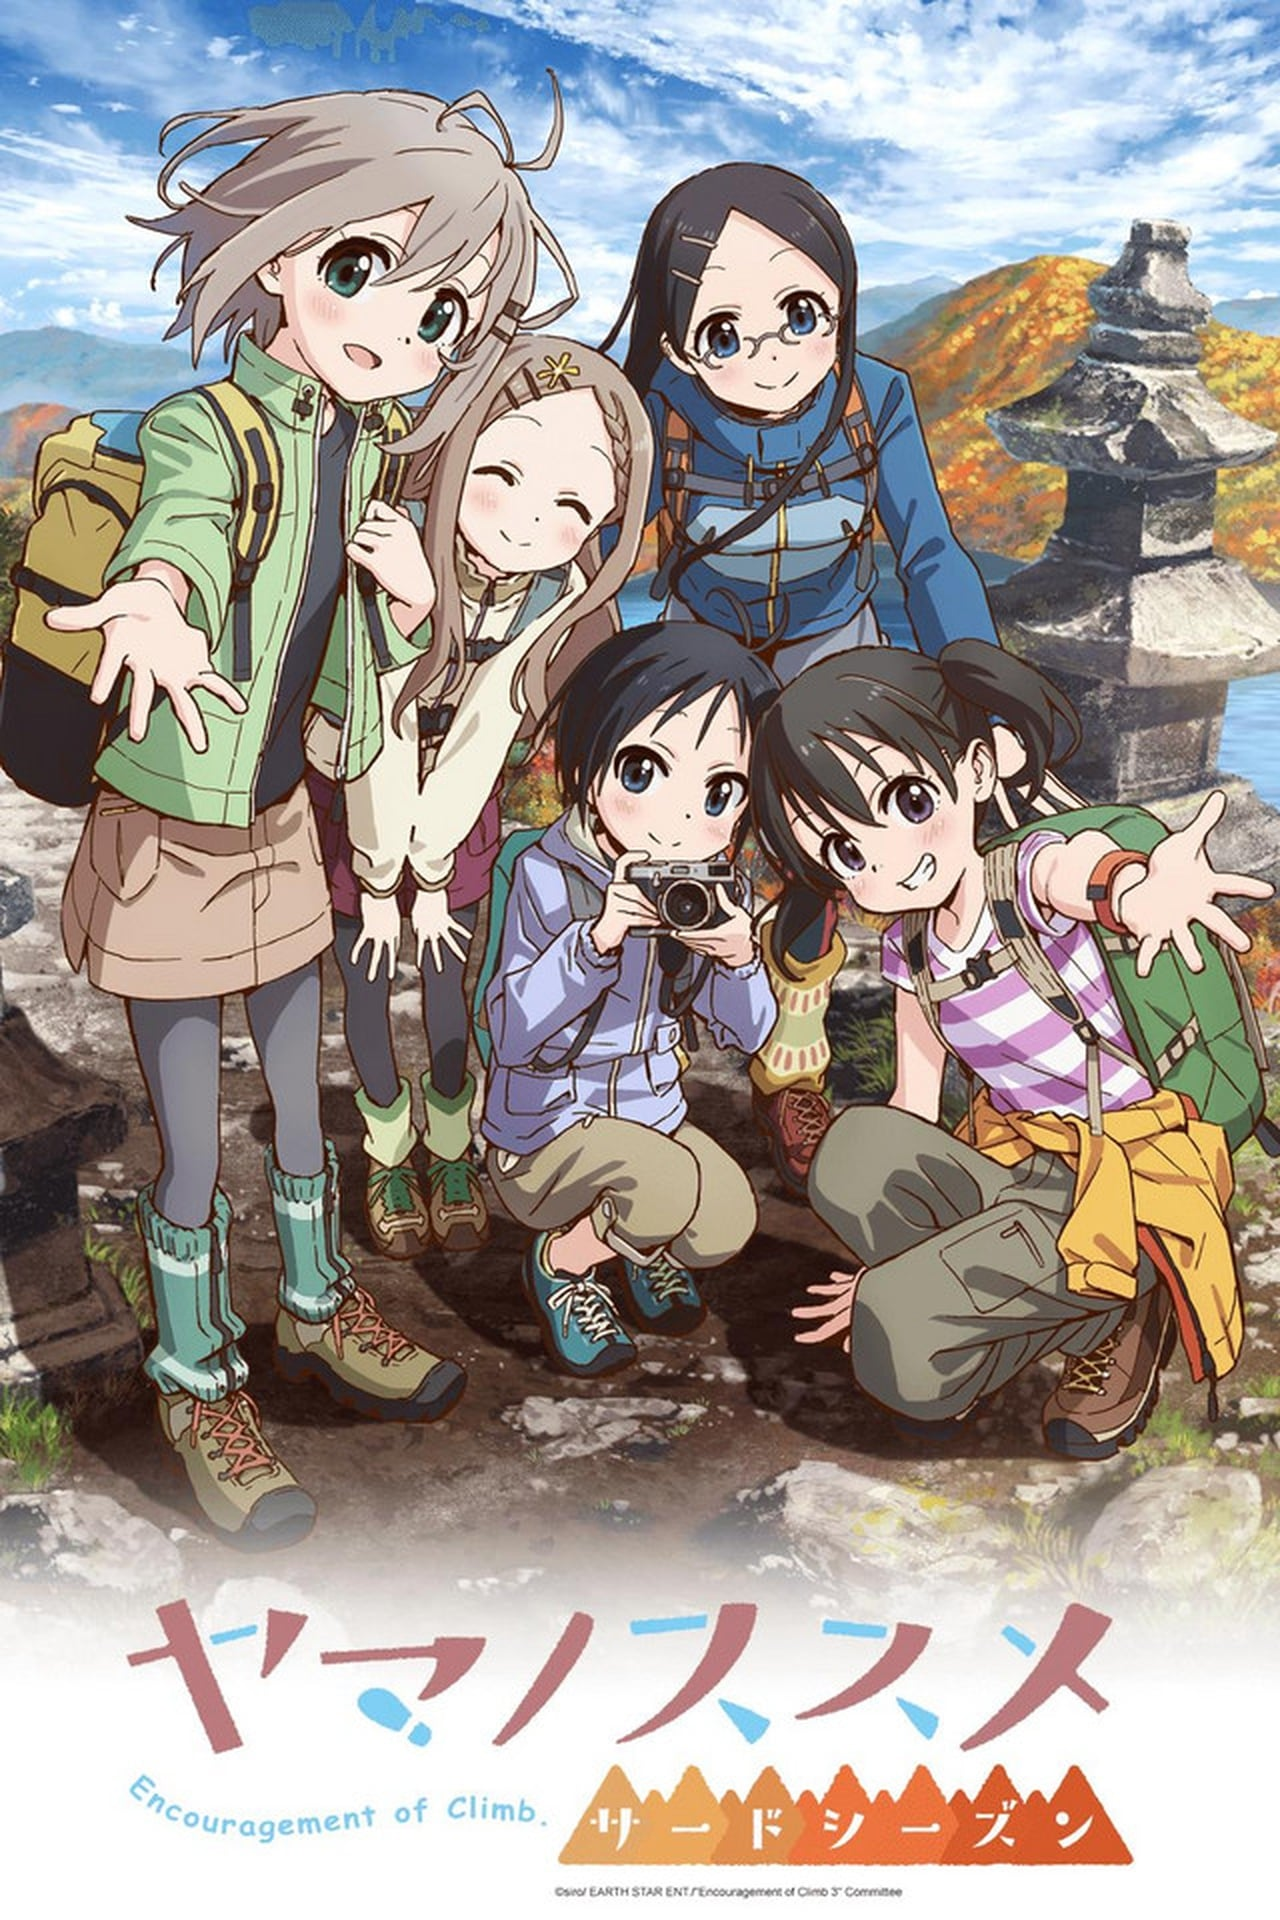 Watch Encouragement Of Climb Season 1 Episode 6 Online For Free On ...